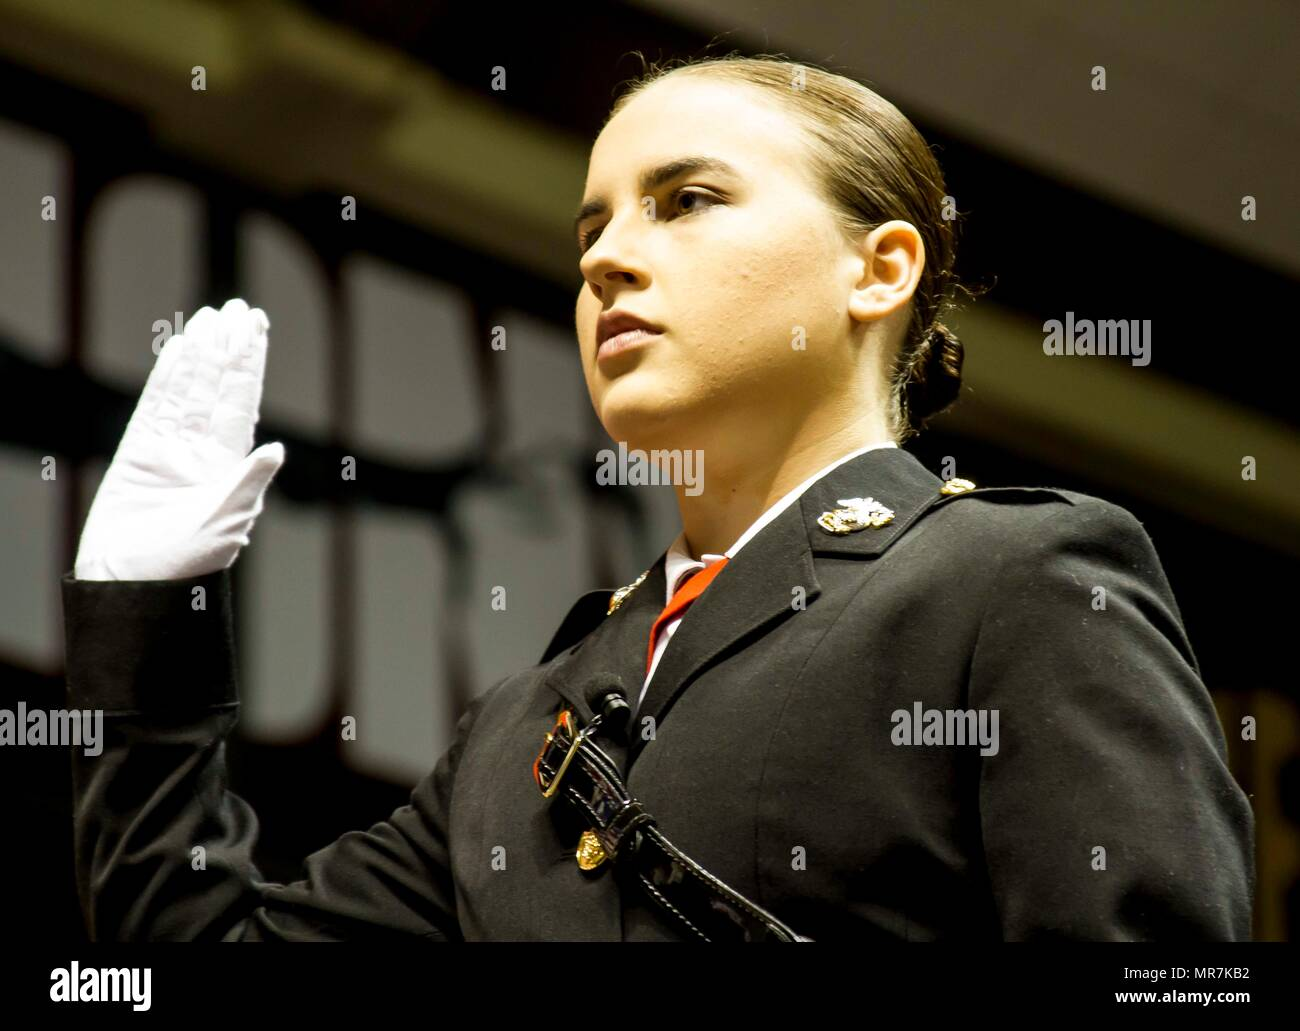 "Mary Sanders raises her hand and takes the Oath of Office in order to become a second lieutenant in the United States Marine Corps during her commissioning ceremony at Coleman Coliseum, May 12, 2017. Sanders is a recent graduate of Alabama State University and attended Platoon Leaders Course and Officer Candidate School before being commissioned. ""After a couple of weeks I saw how the Marine Corps worked and was hooked. I was so inspired and motivated that if I had any doubts before, they were gone. This was something I wanted to be a part of."" (U.S. Marine Corps photo by Cpl. Krista James/Rel - Stock Image"